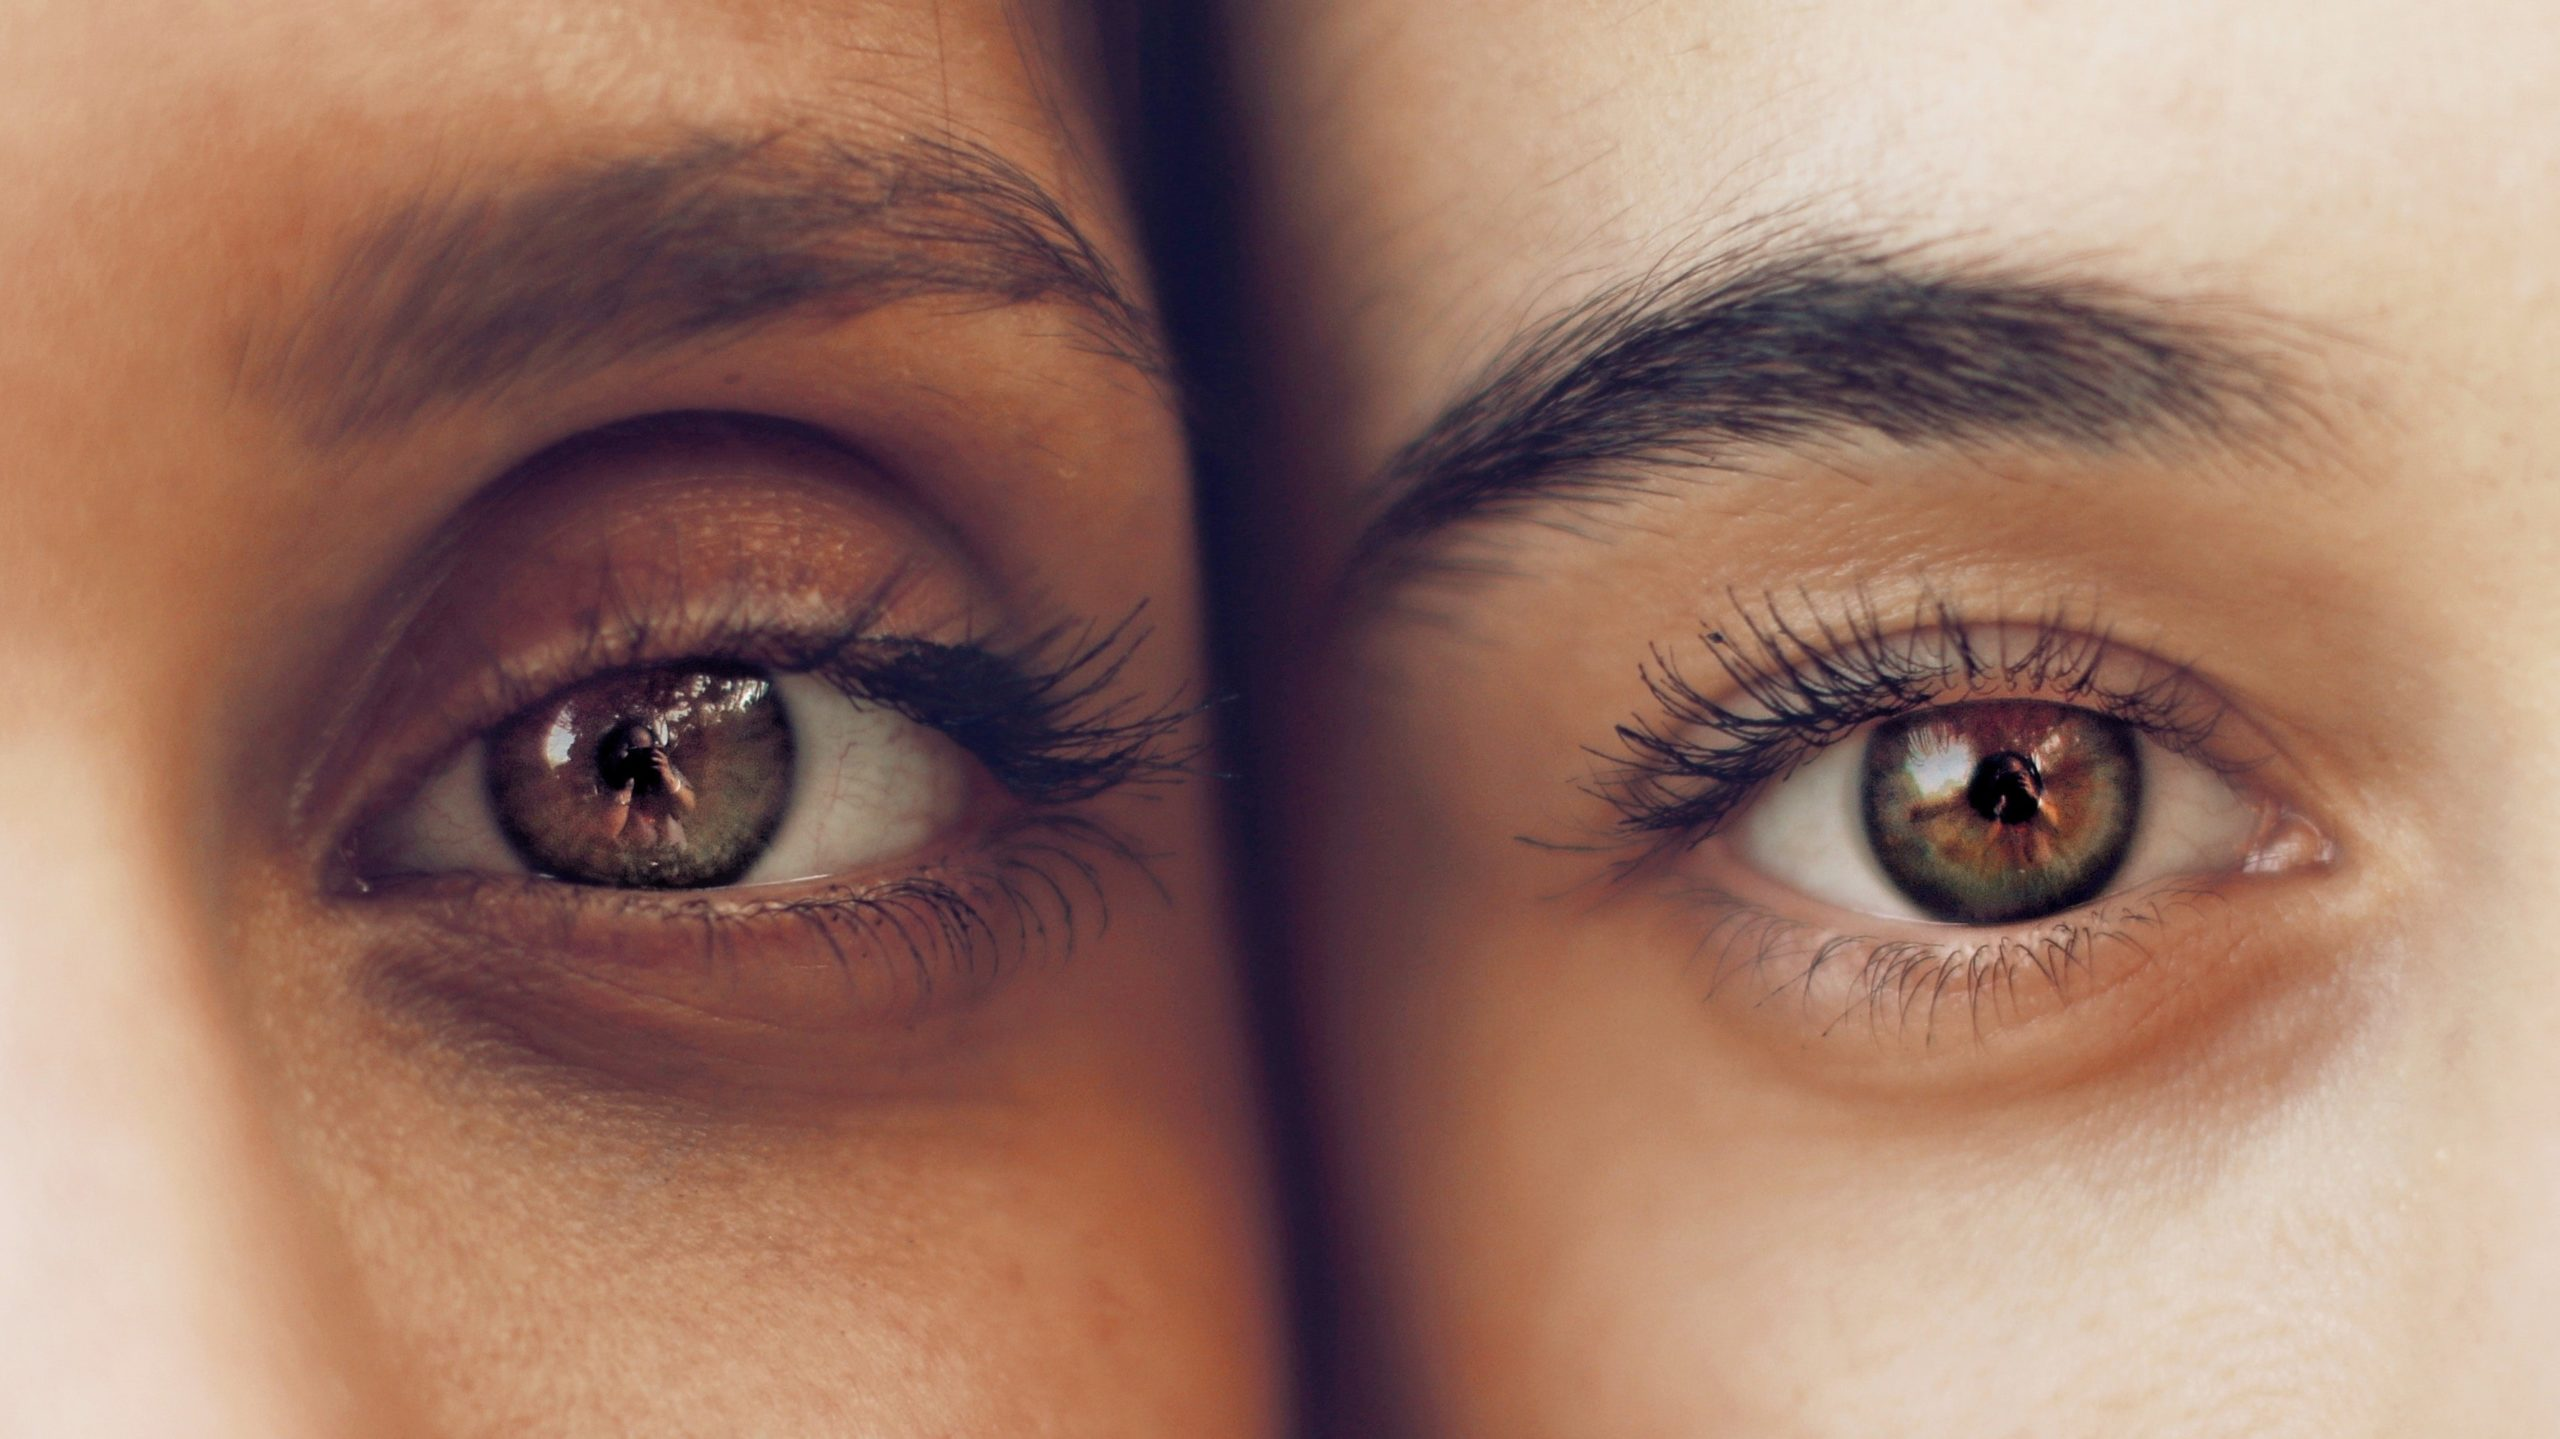 close up of two people, one eye each, with slight under eye darkness.